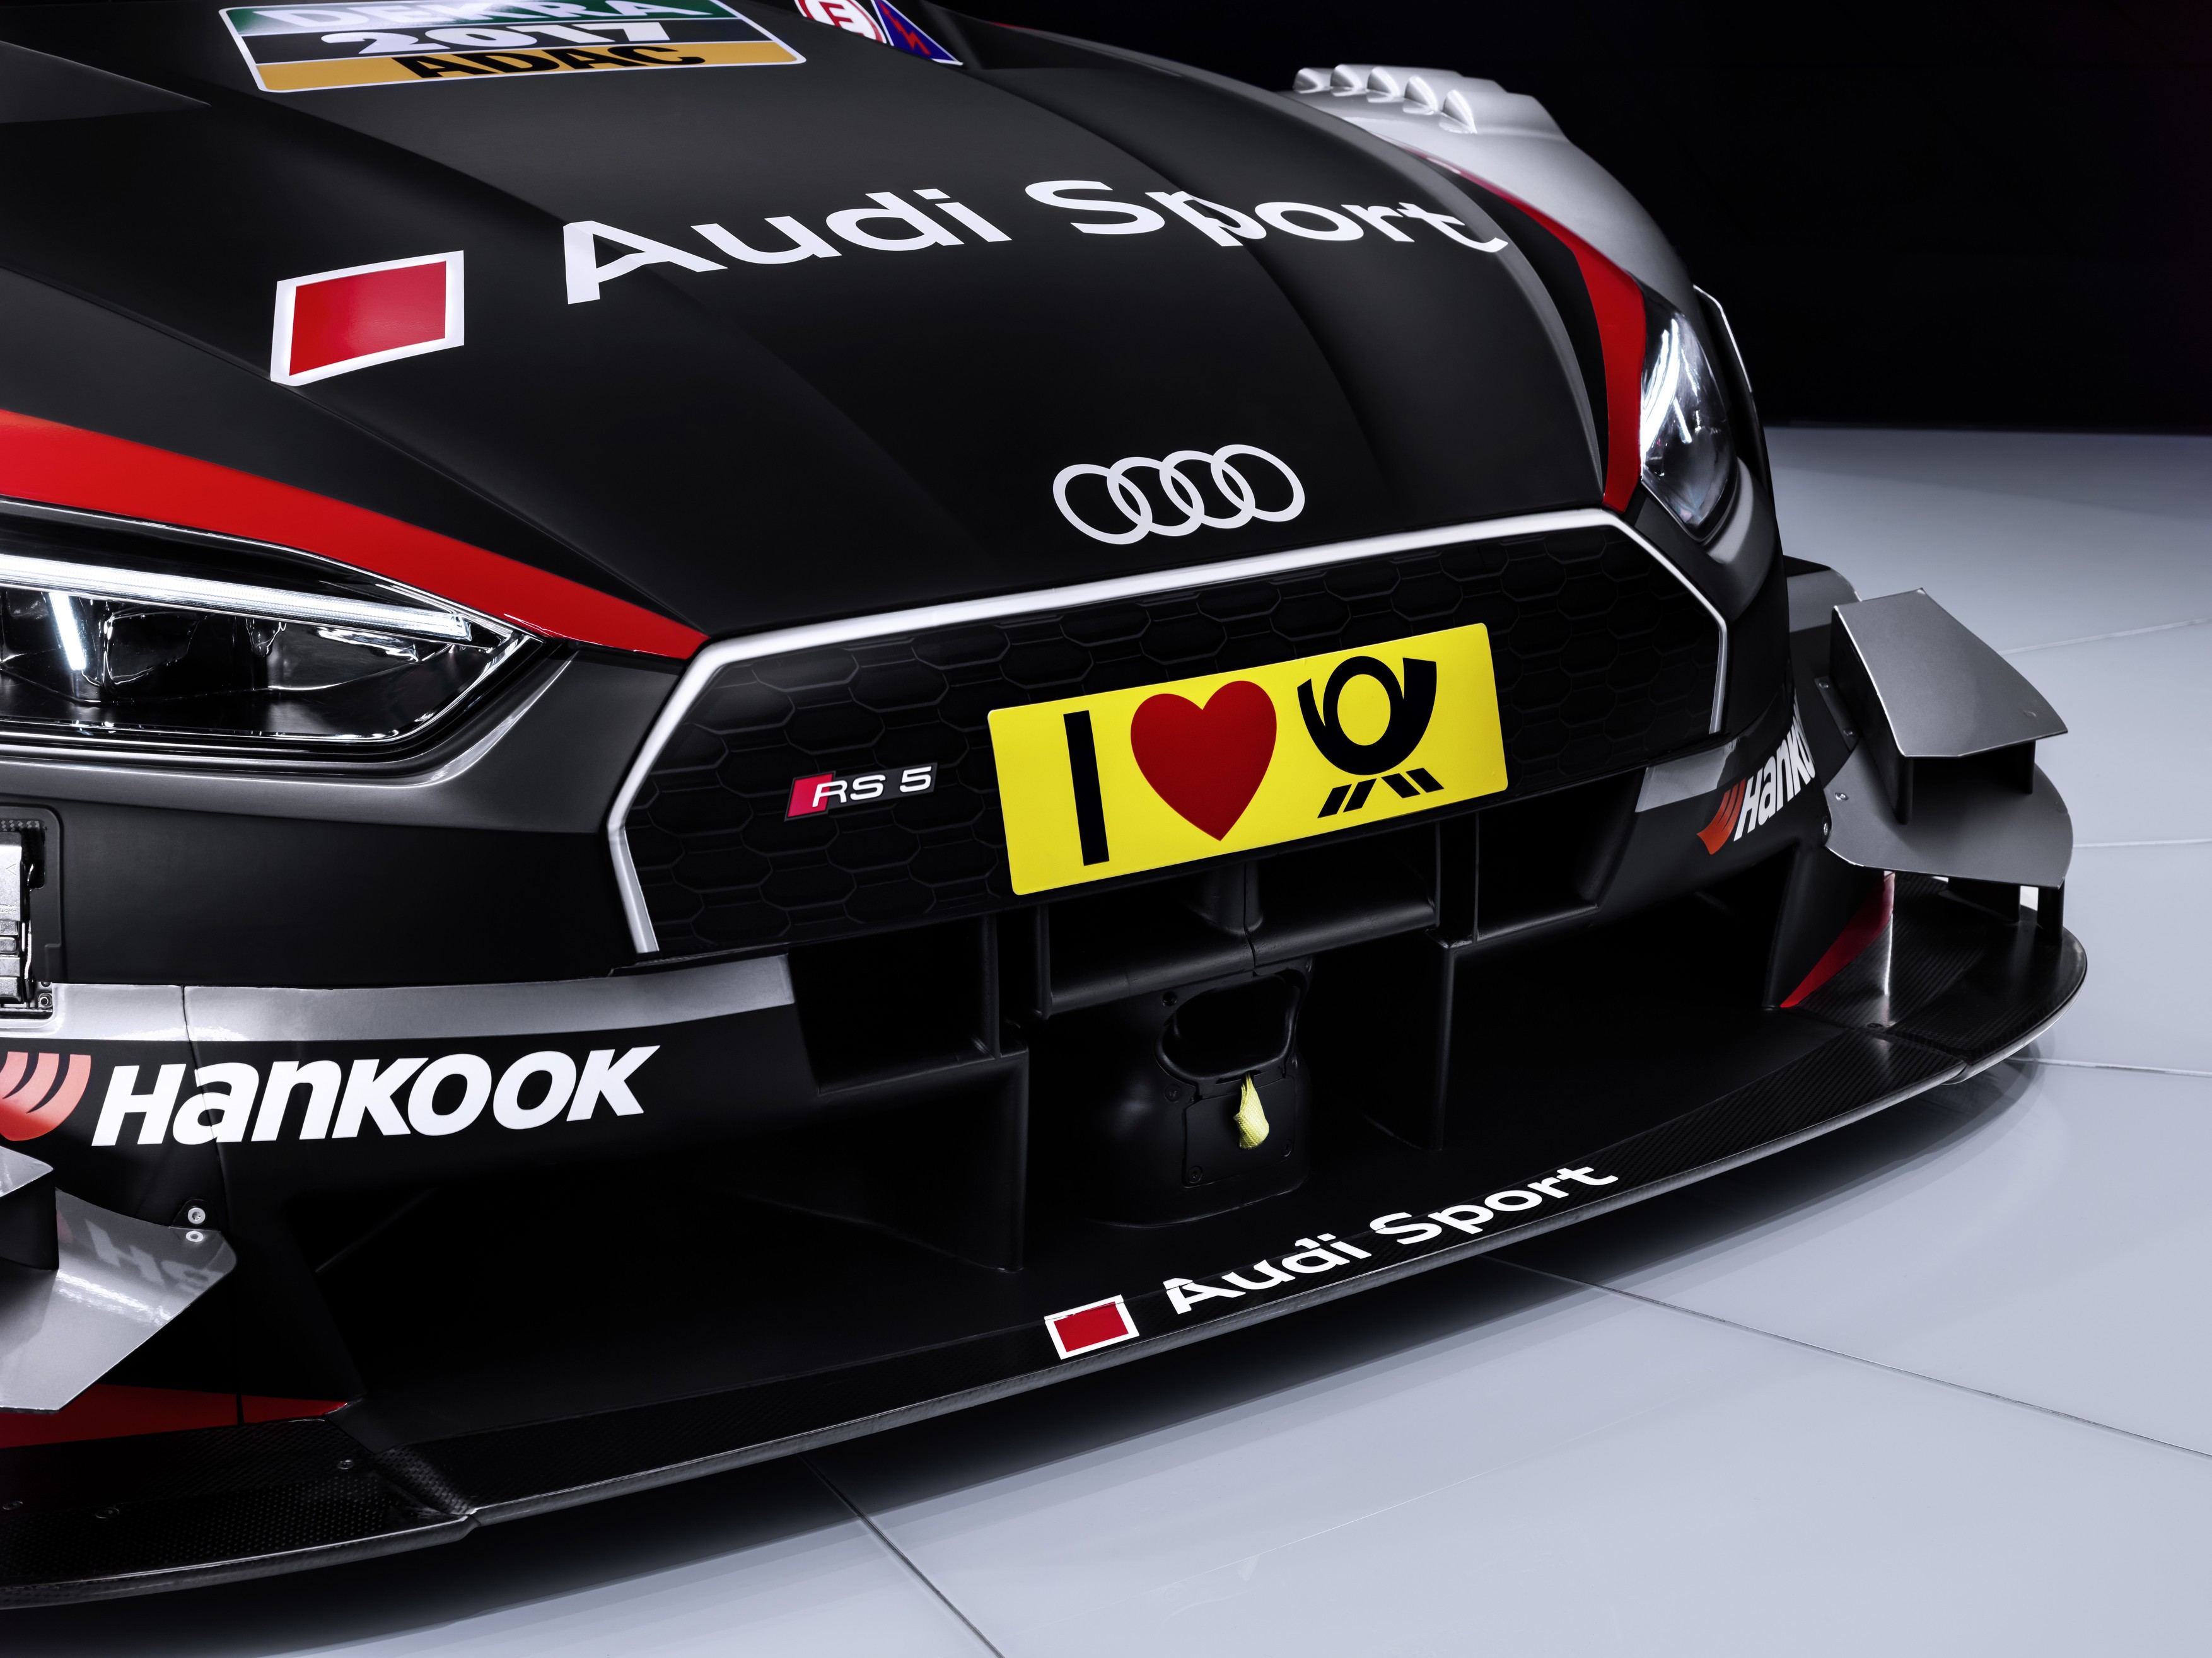 New Audi Rs5 Dtm Looks Racy In Geneva Prepares To Defend